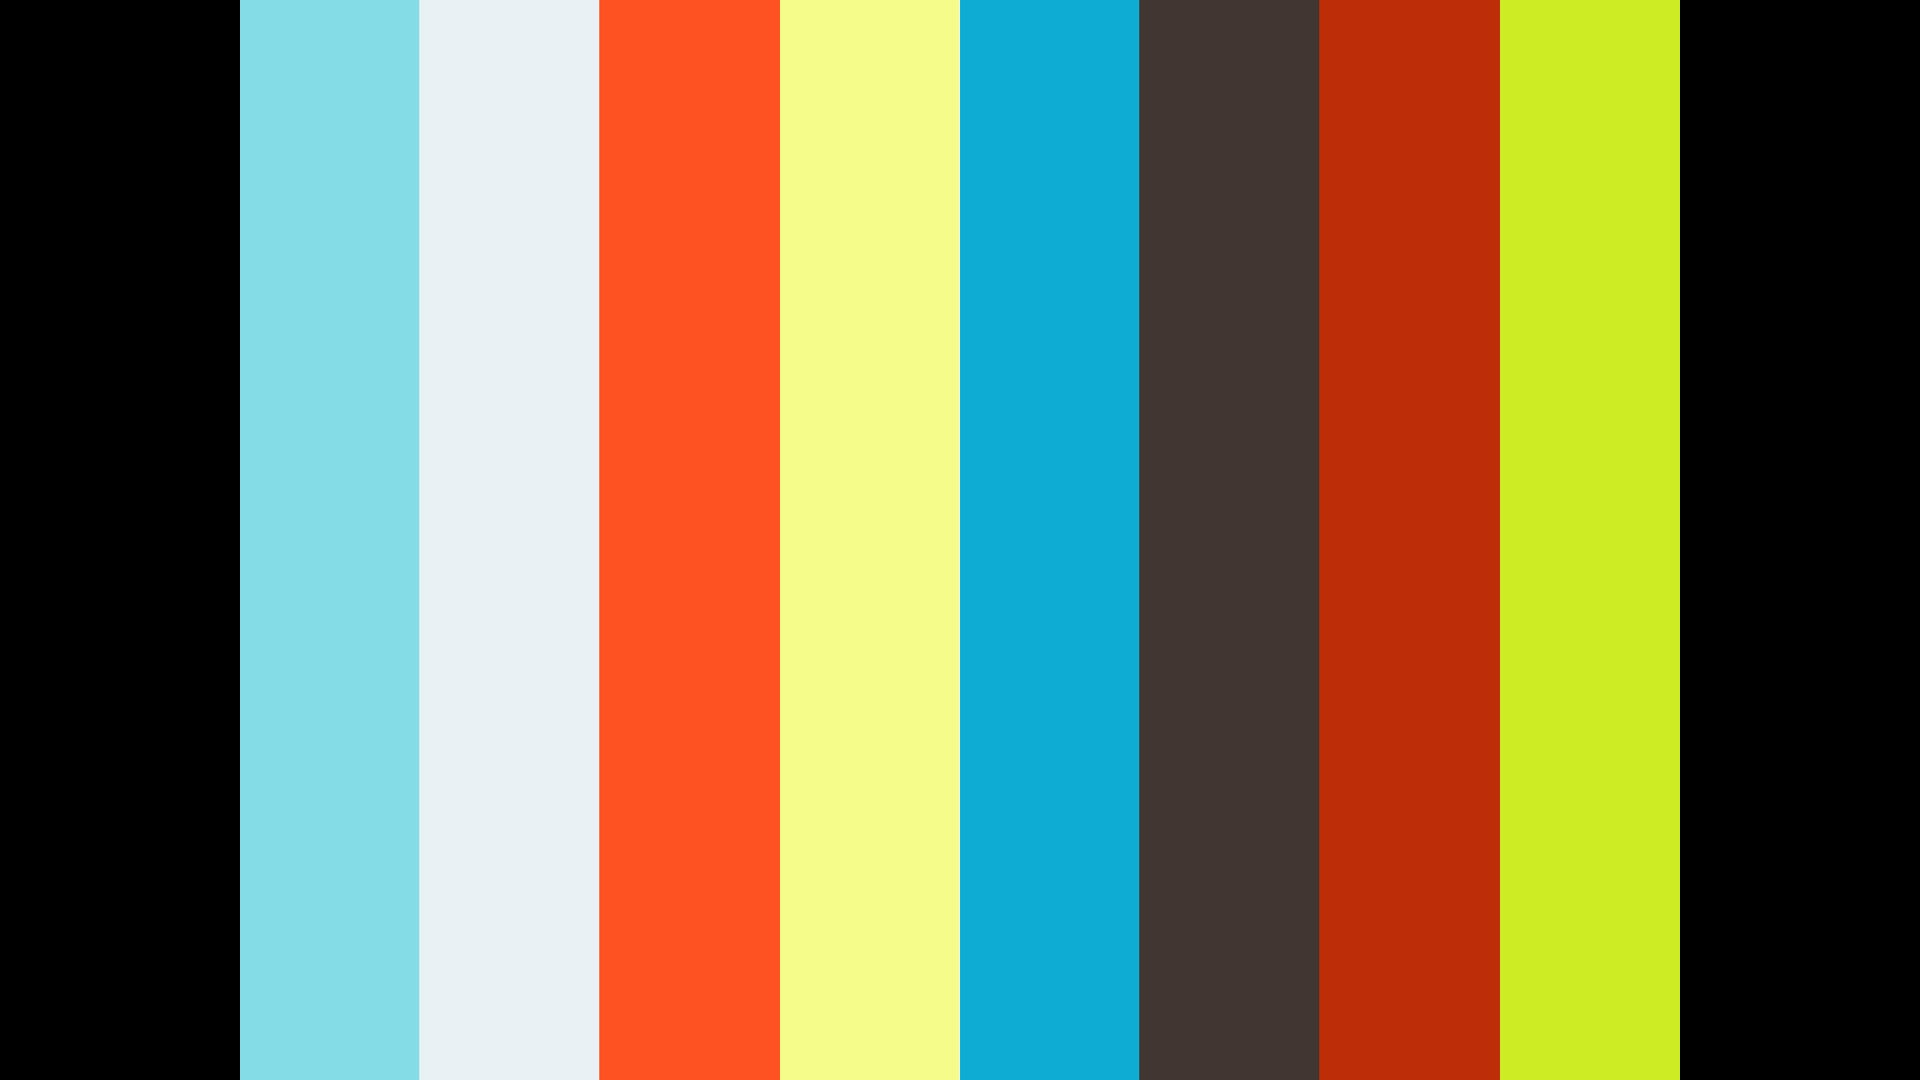 HBN Nature Hide - short film